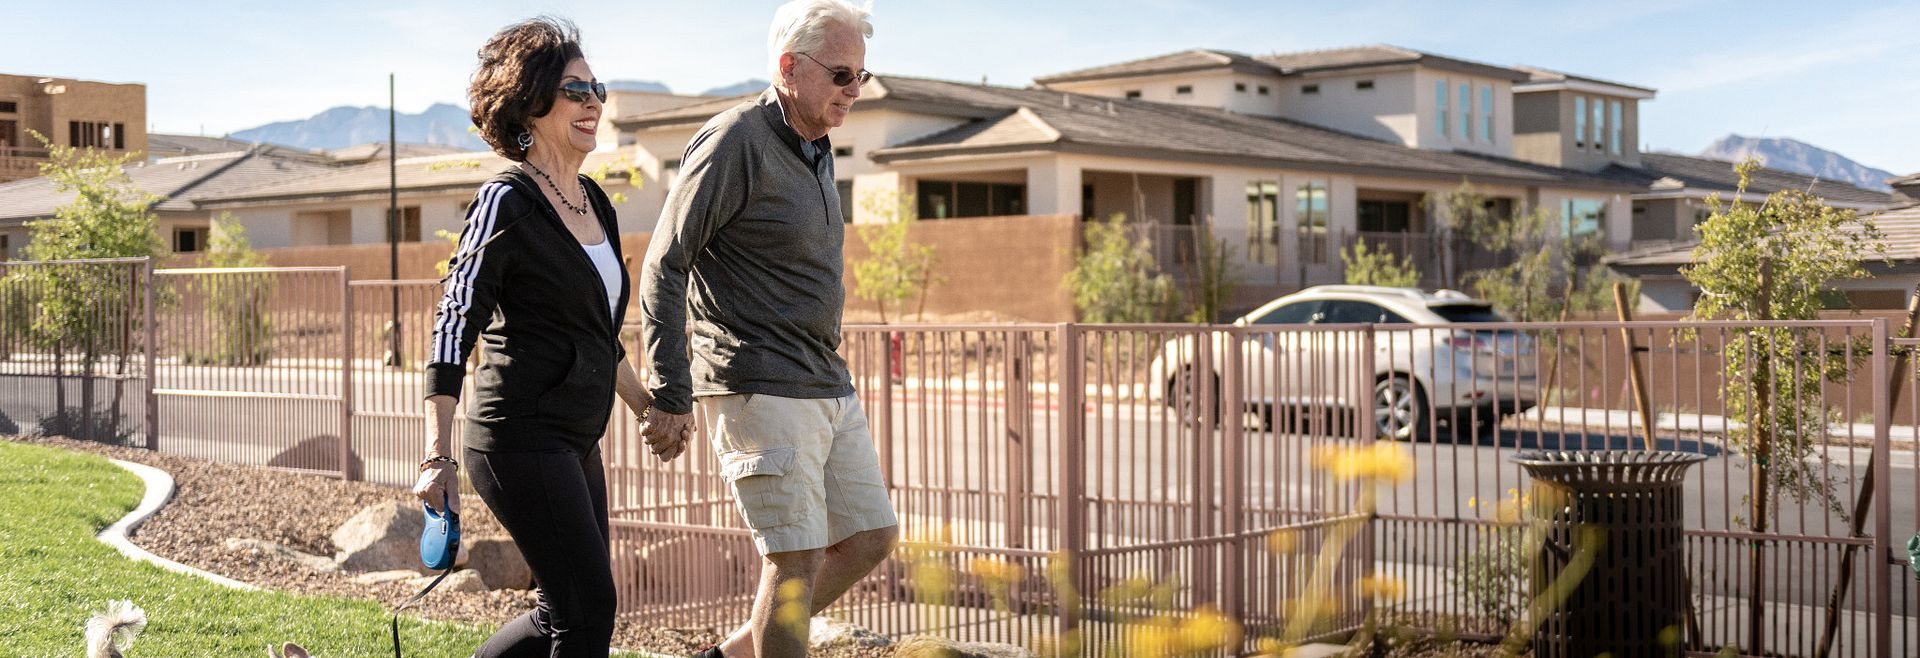 Couple Walking the dog at Trilogy in Summerlin by Shea Homes in Las Vegas, NV